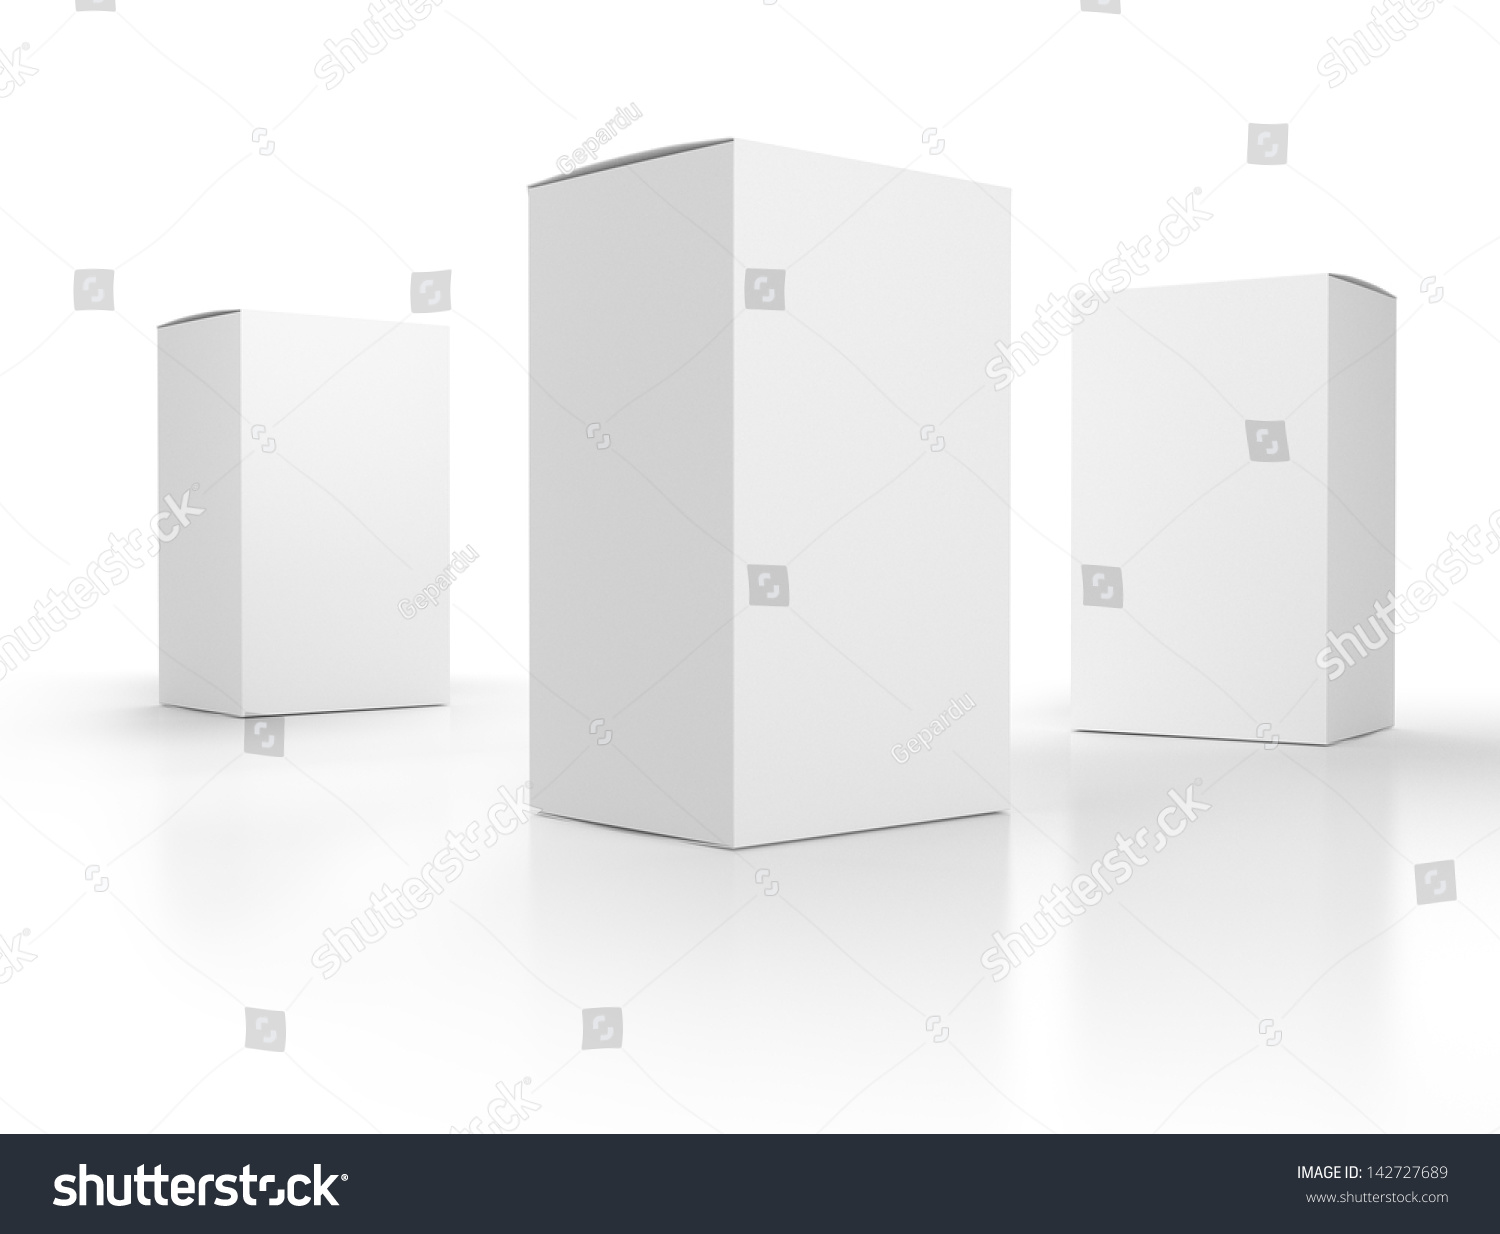 blank paper boxes composition template render stock photo 142727689 shutterstock. Black Bedroom Furniture Sets. Home Design Ideas